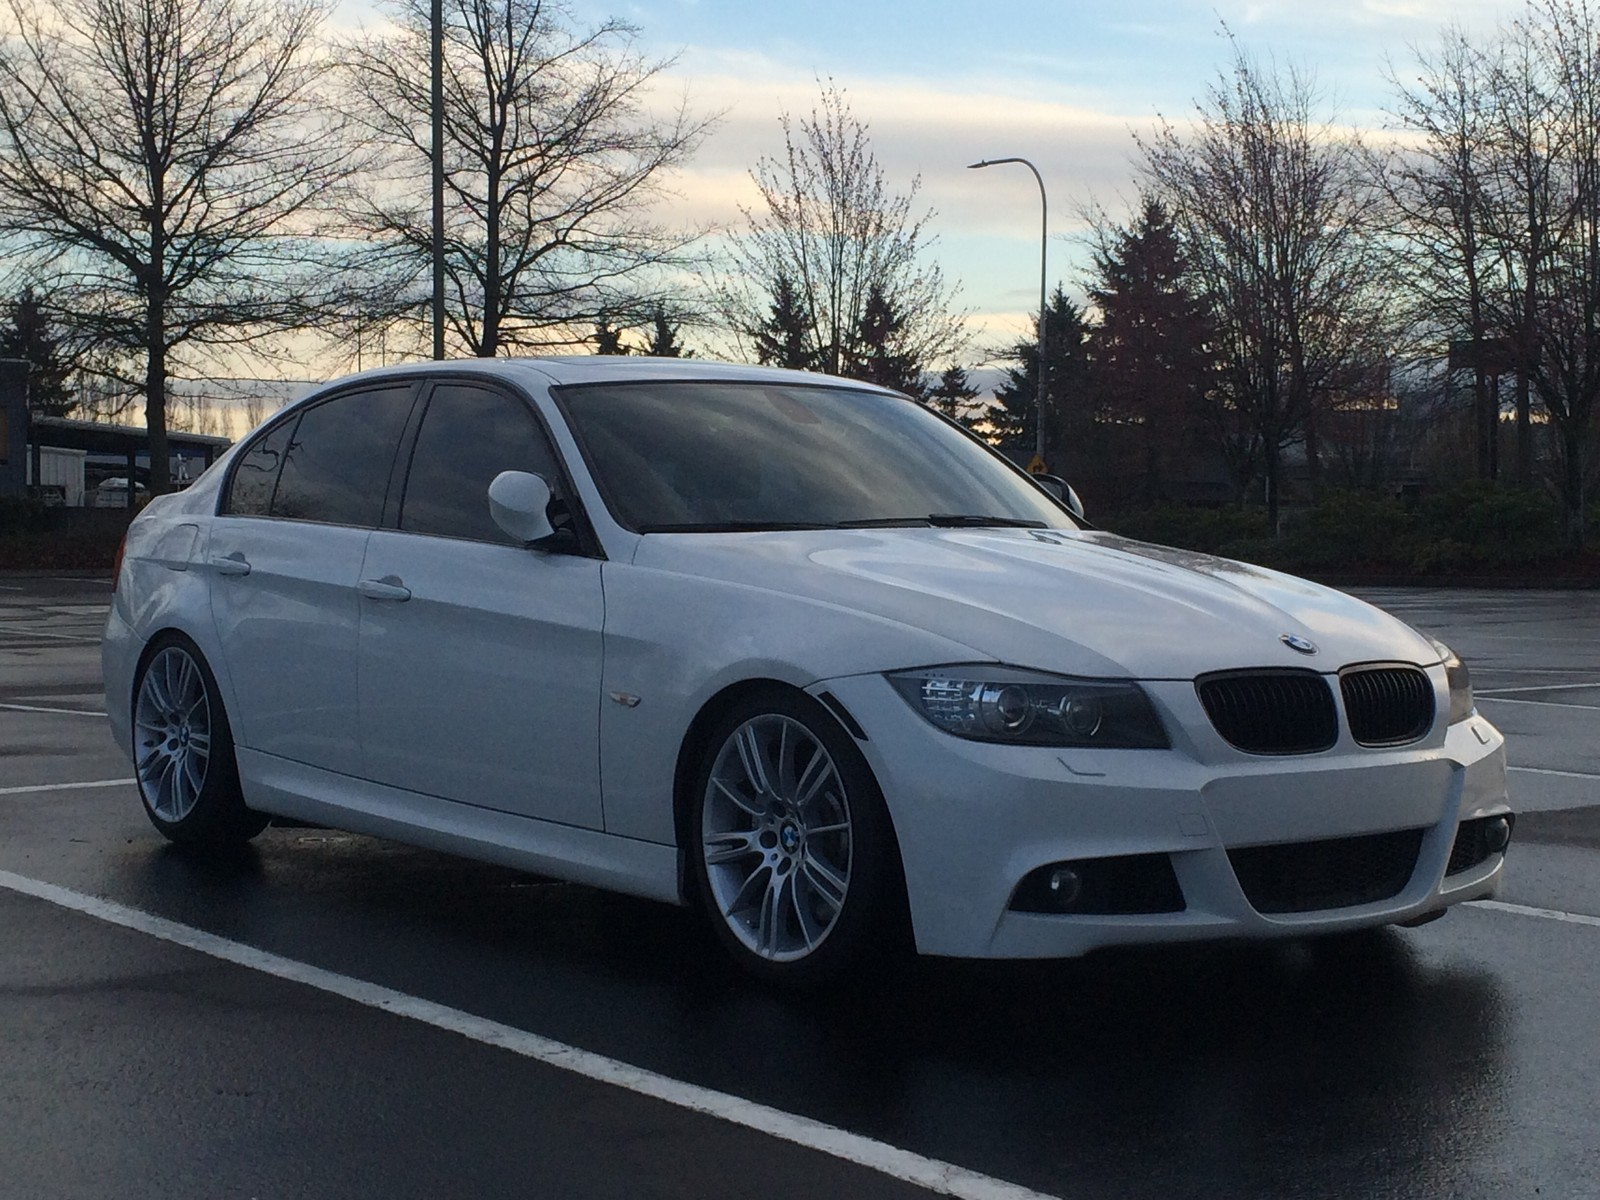 2011 BMW 335xi Mods Upgrades Wallpaper DragTimes